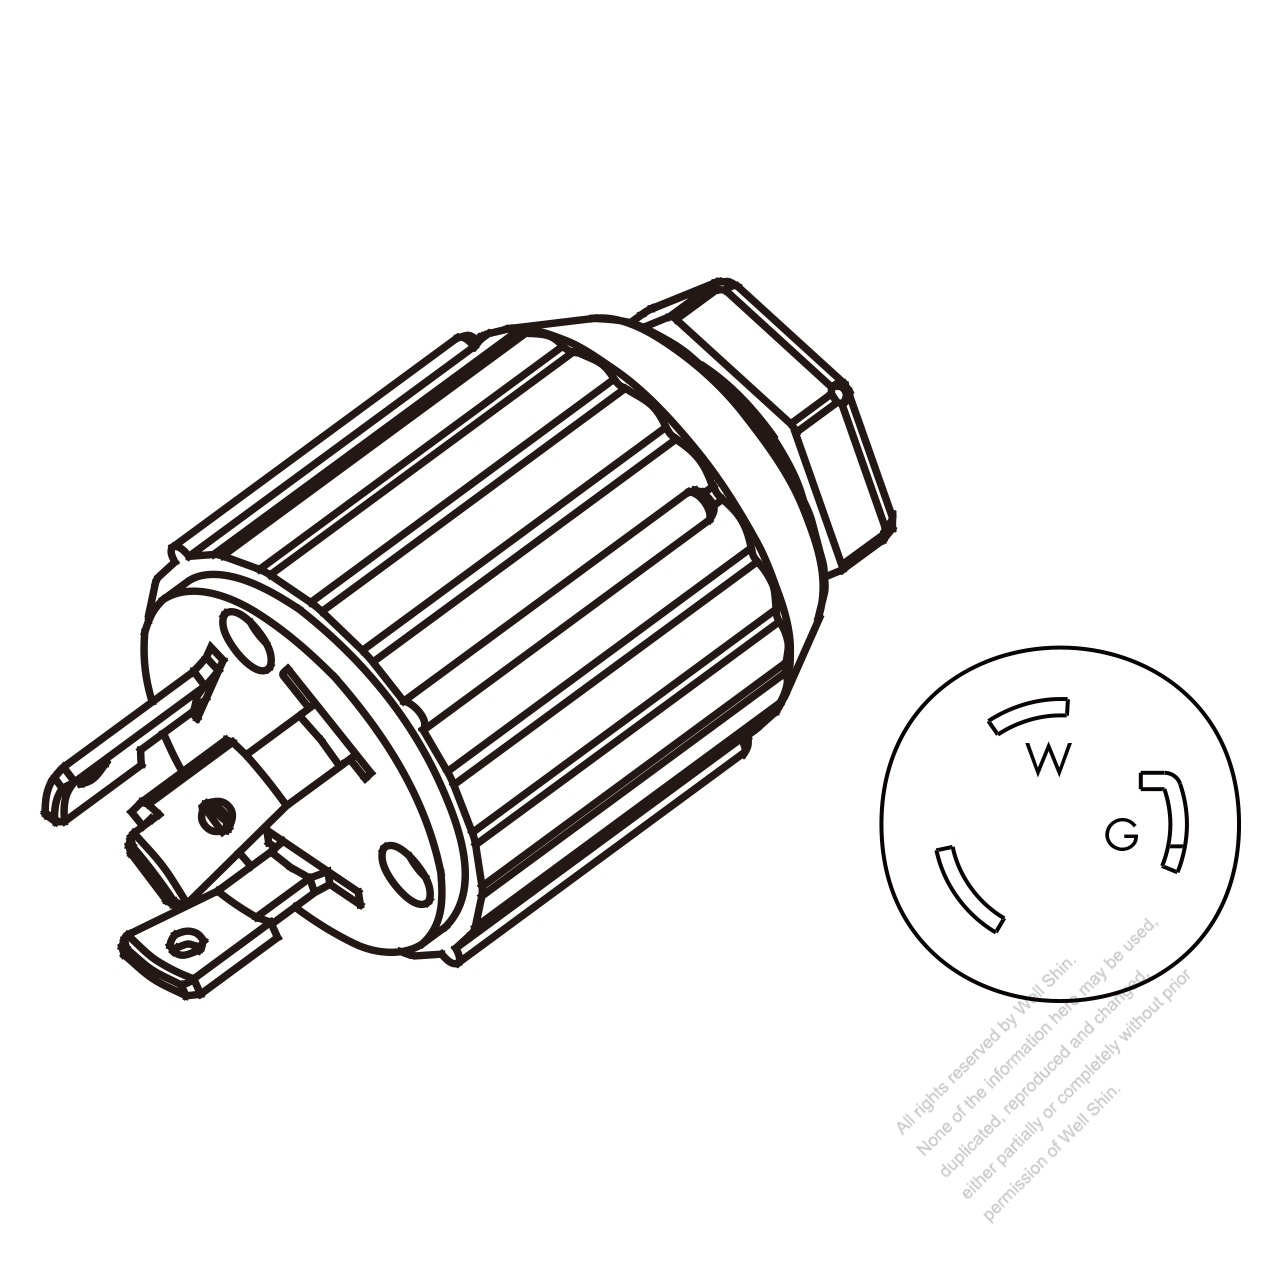 Nema 5 20r Receptacle Wiring Diagram Parts Wiring